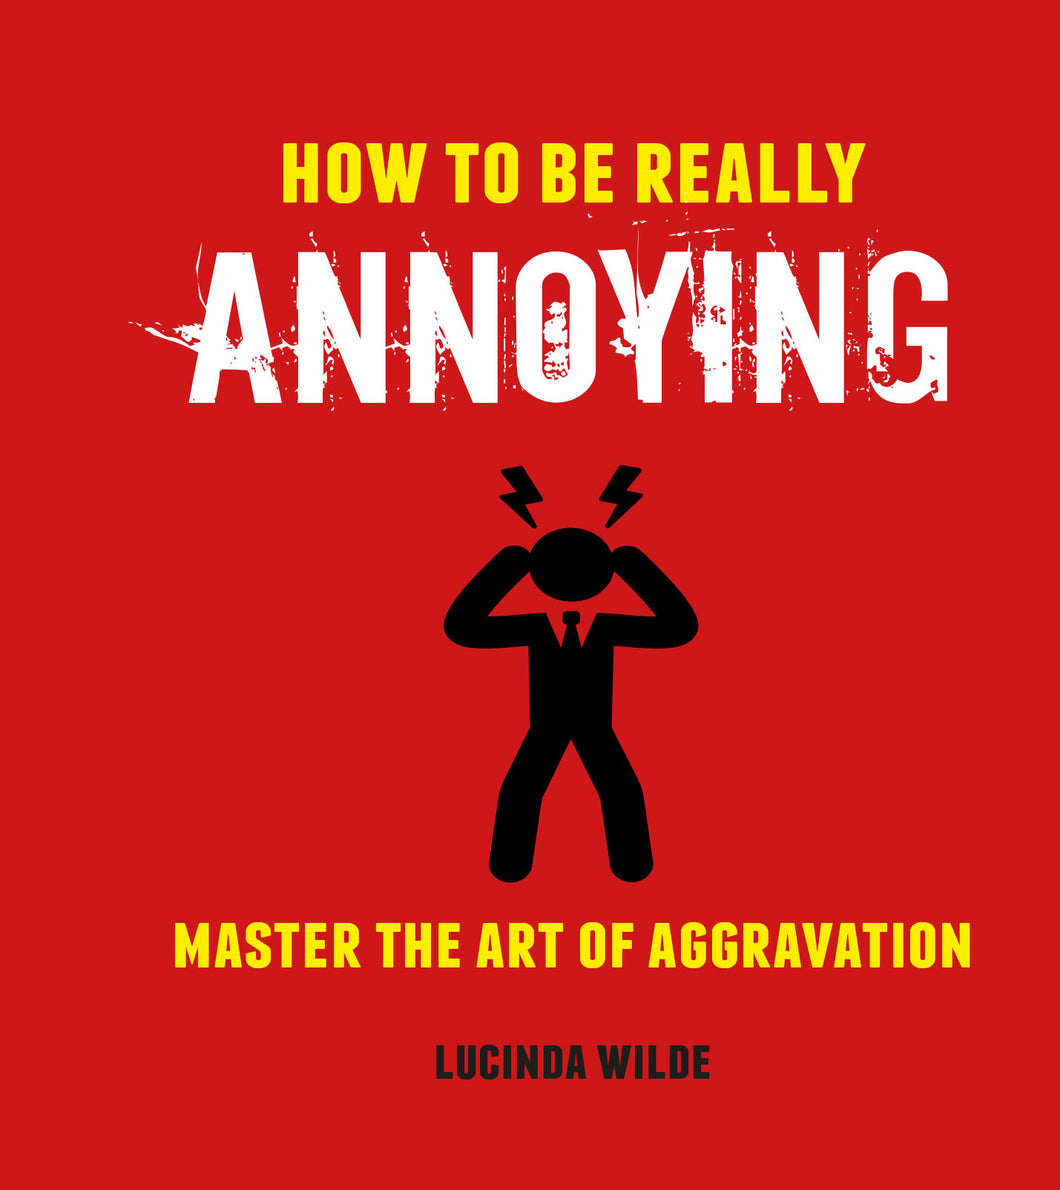 How to Be Really Annoying